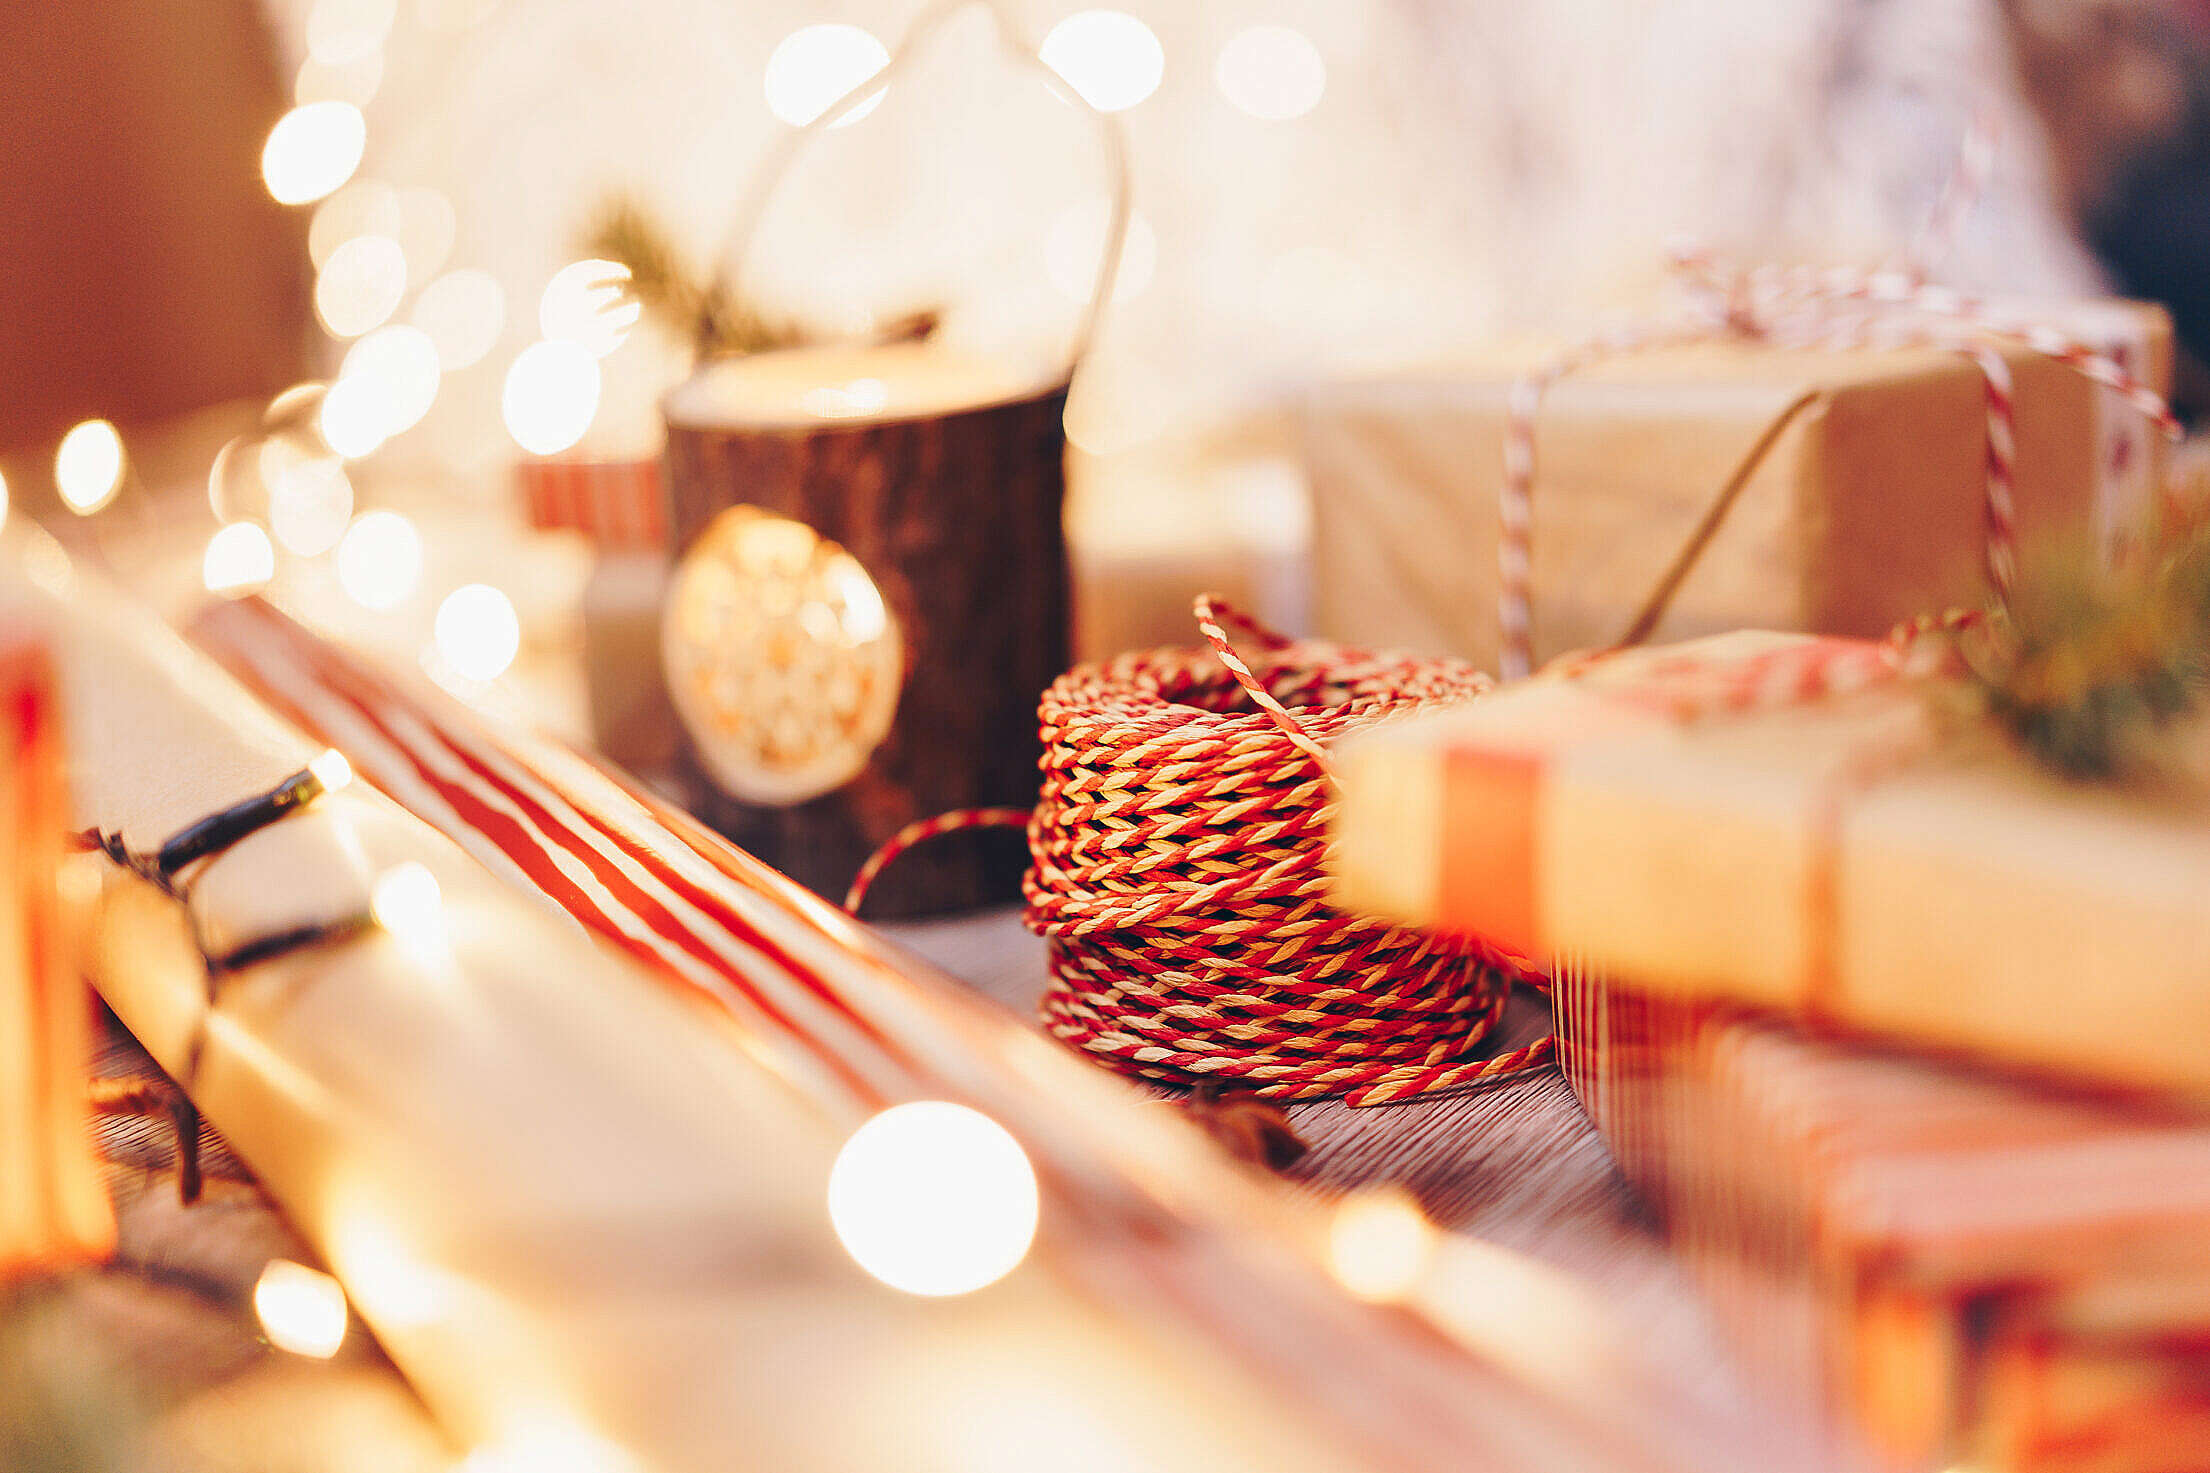 Gift Wrapping Supplies Free Stock Photo